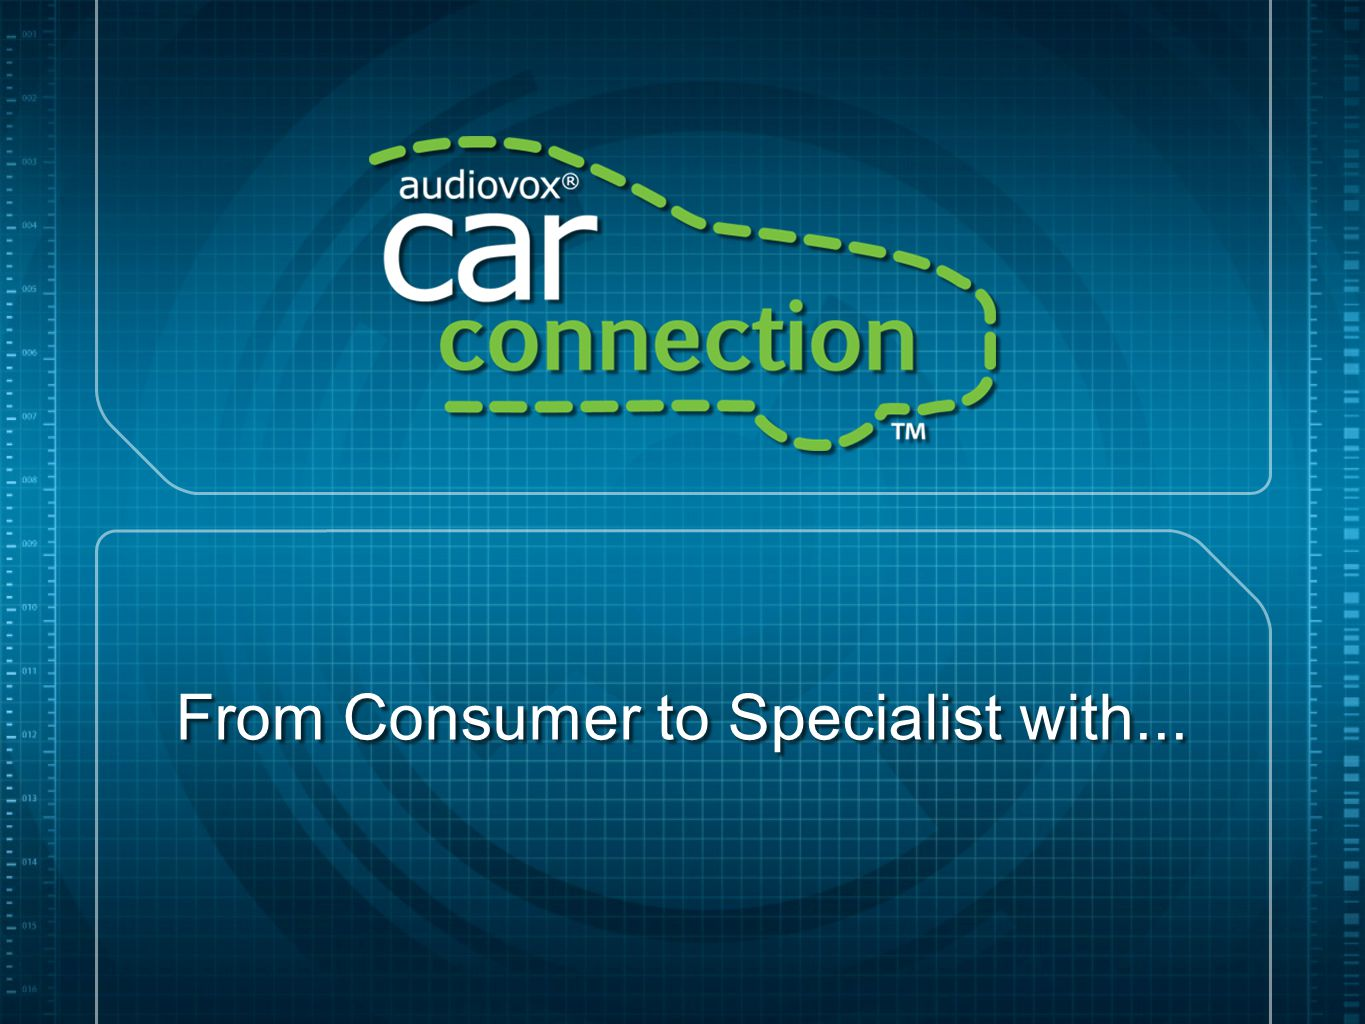 From Consumer to Specialist with...